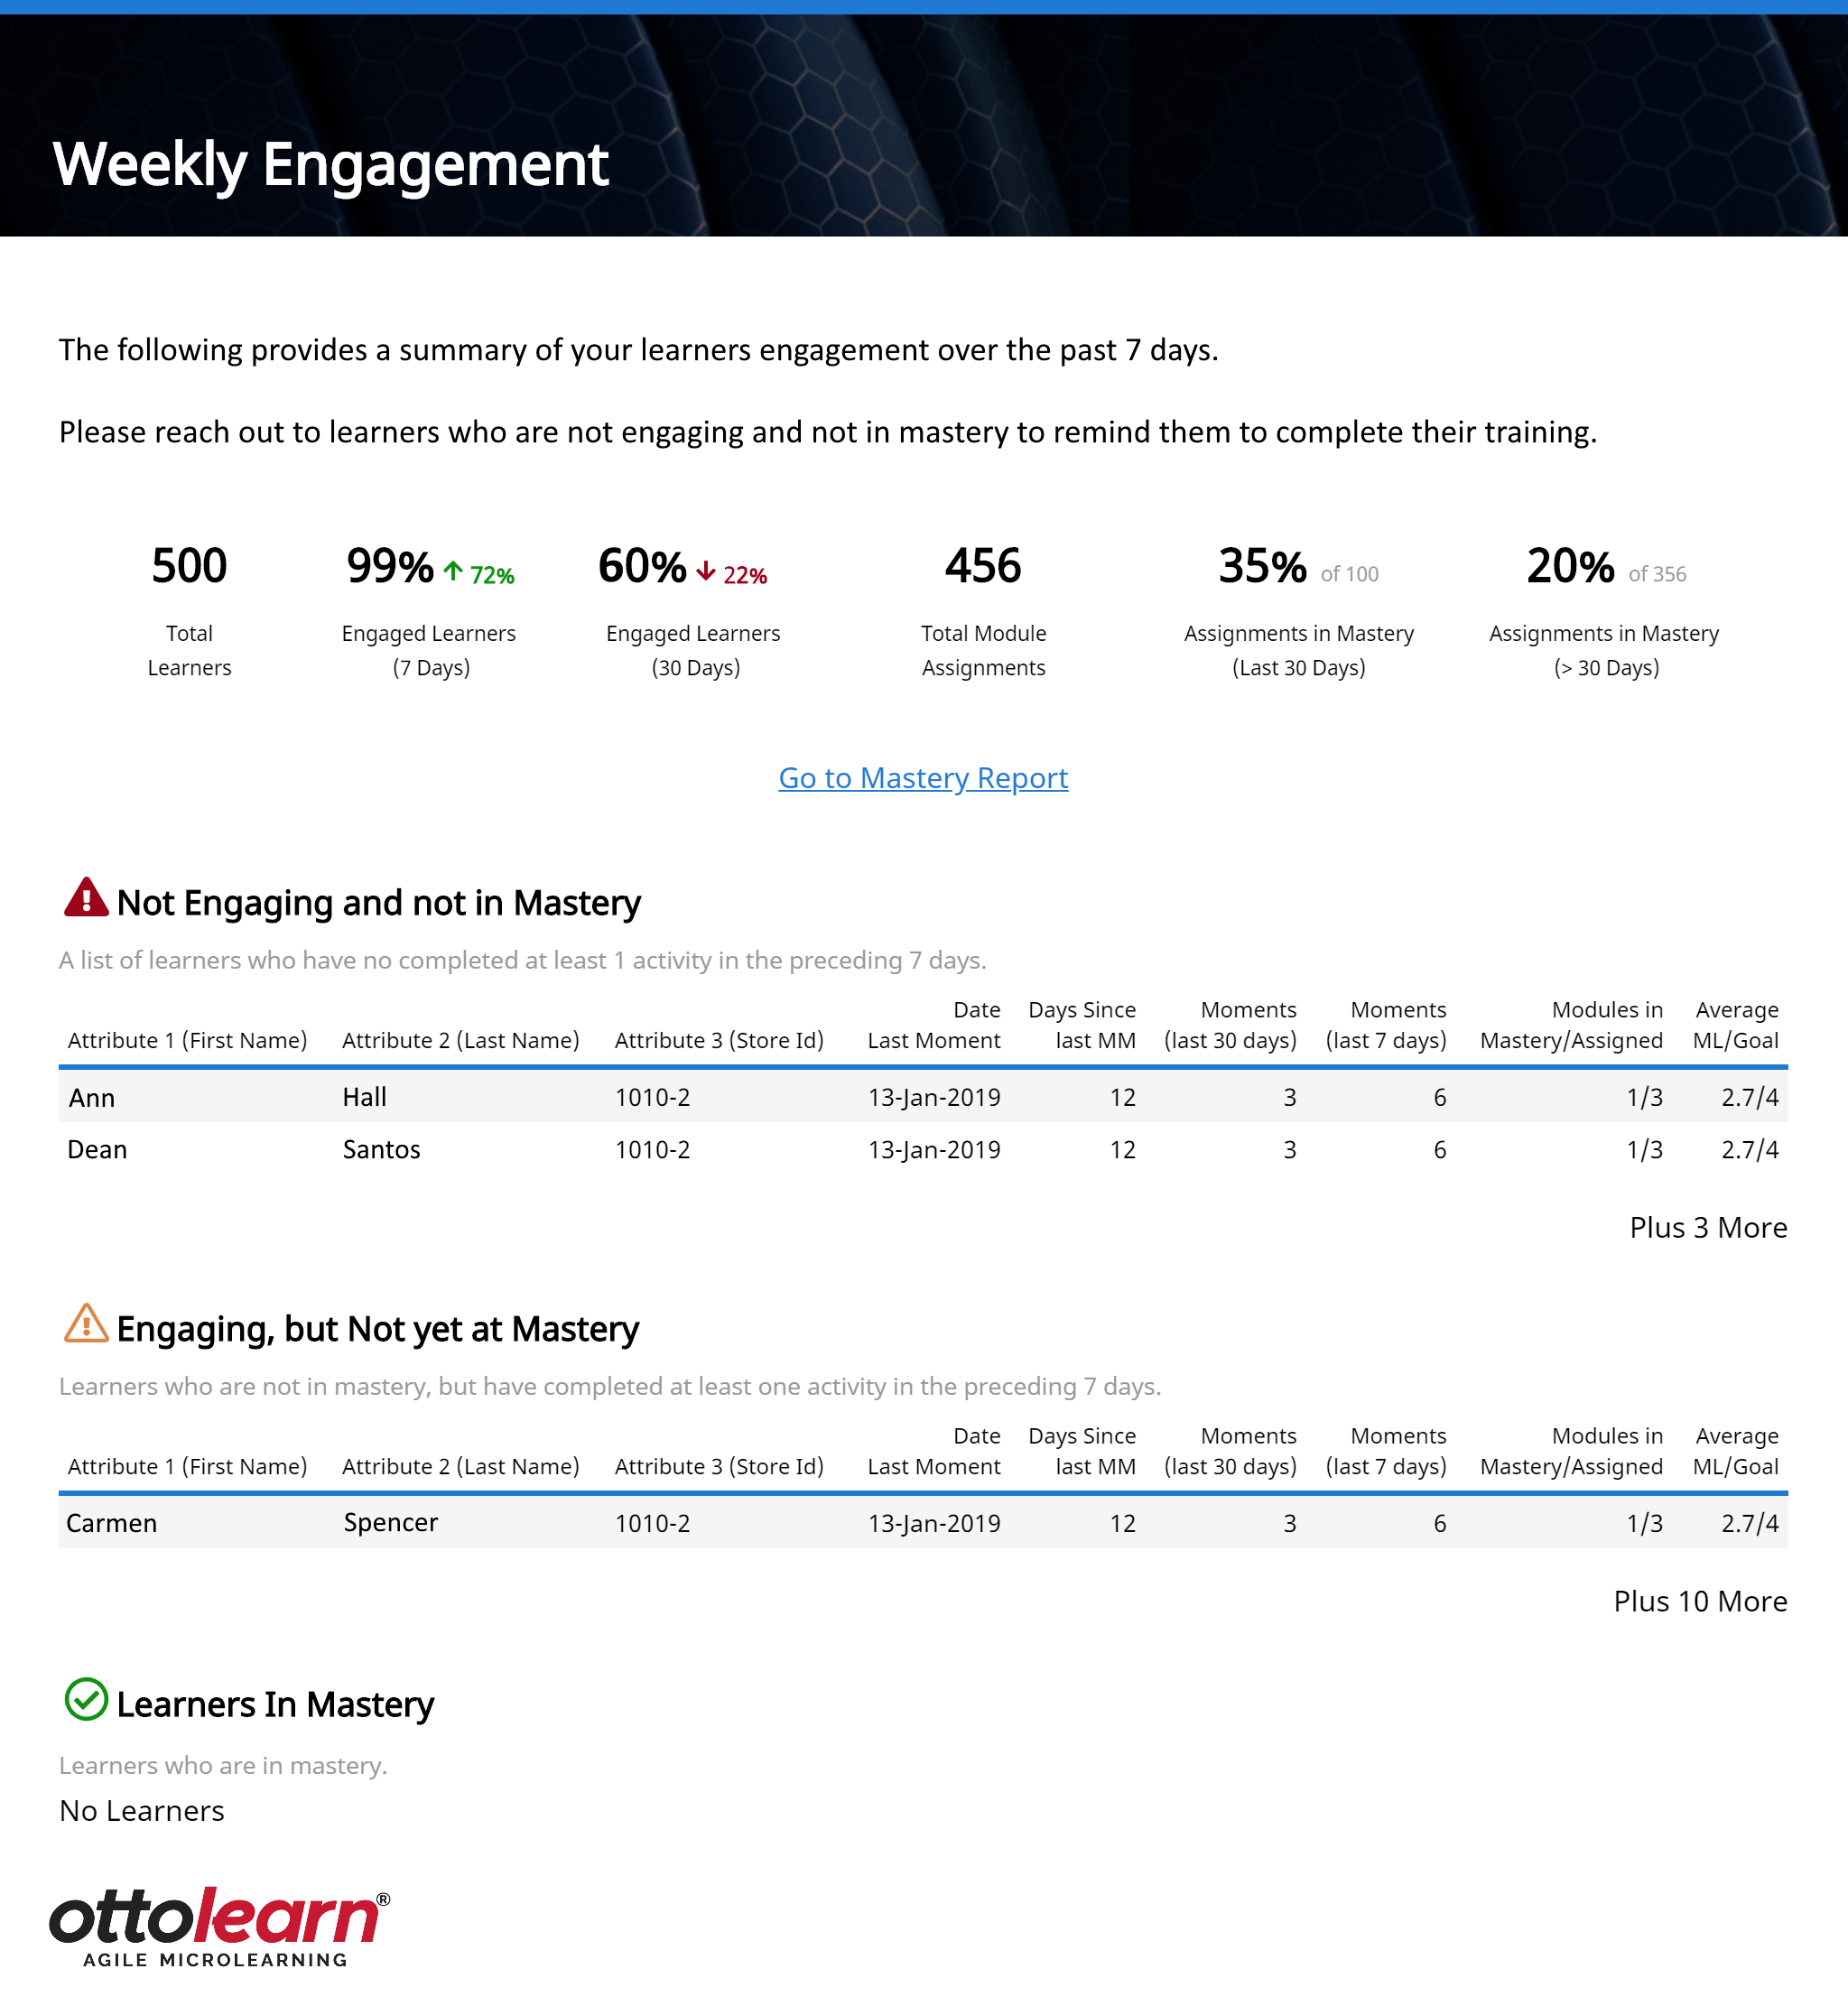 """Weekly Engagement email. The title at the top of the email reads """"Weekly Engagement"""". Below this, there is an introductory message followed by a summary of 6 analytics. From left to right these analytics are total learners (500), engaged learners 7 days (99% up 72%), engaged learners 30 days (0% down 72%), total Module assignments (456), assignments in mastery last 30 days (35% of 100), and assignments in mastery more than 30 days (20% of 356). Below the analytics summary is a link to the Mastery Report. Below that is a table showing learners Not Engaging and Not in Mastery. Below this table is another table called Engaging but Not Yet at Mastery. Below this is a table showing Learners in Mastery. At the bottom of the page is the organization logo."""